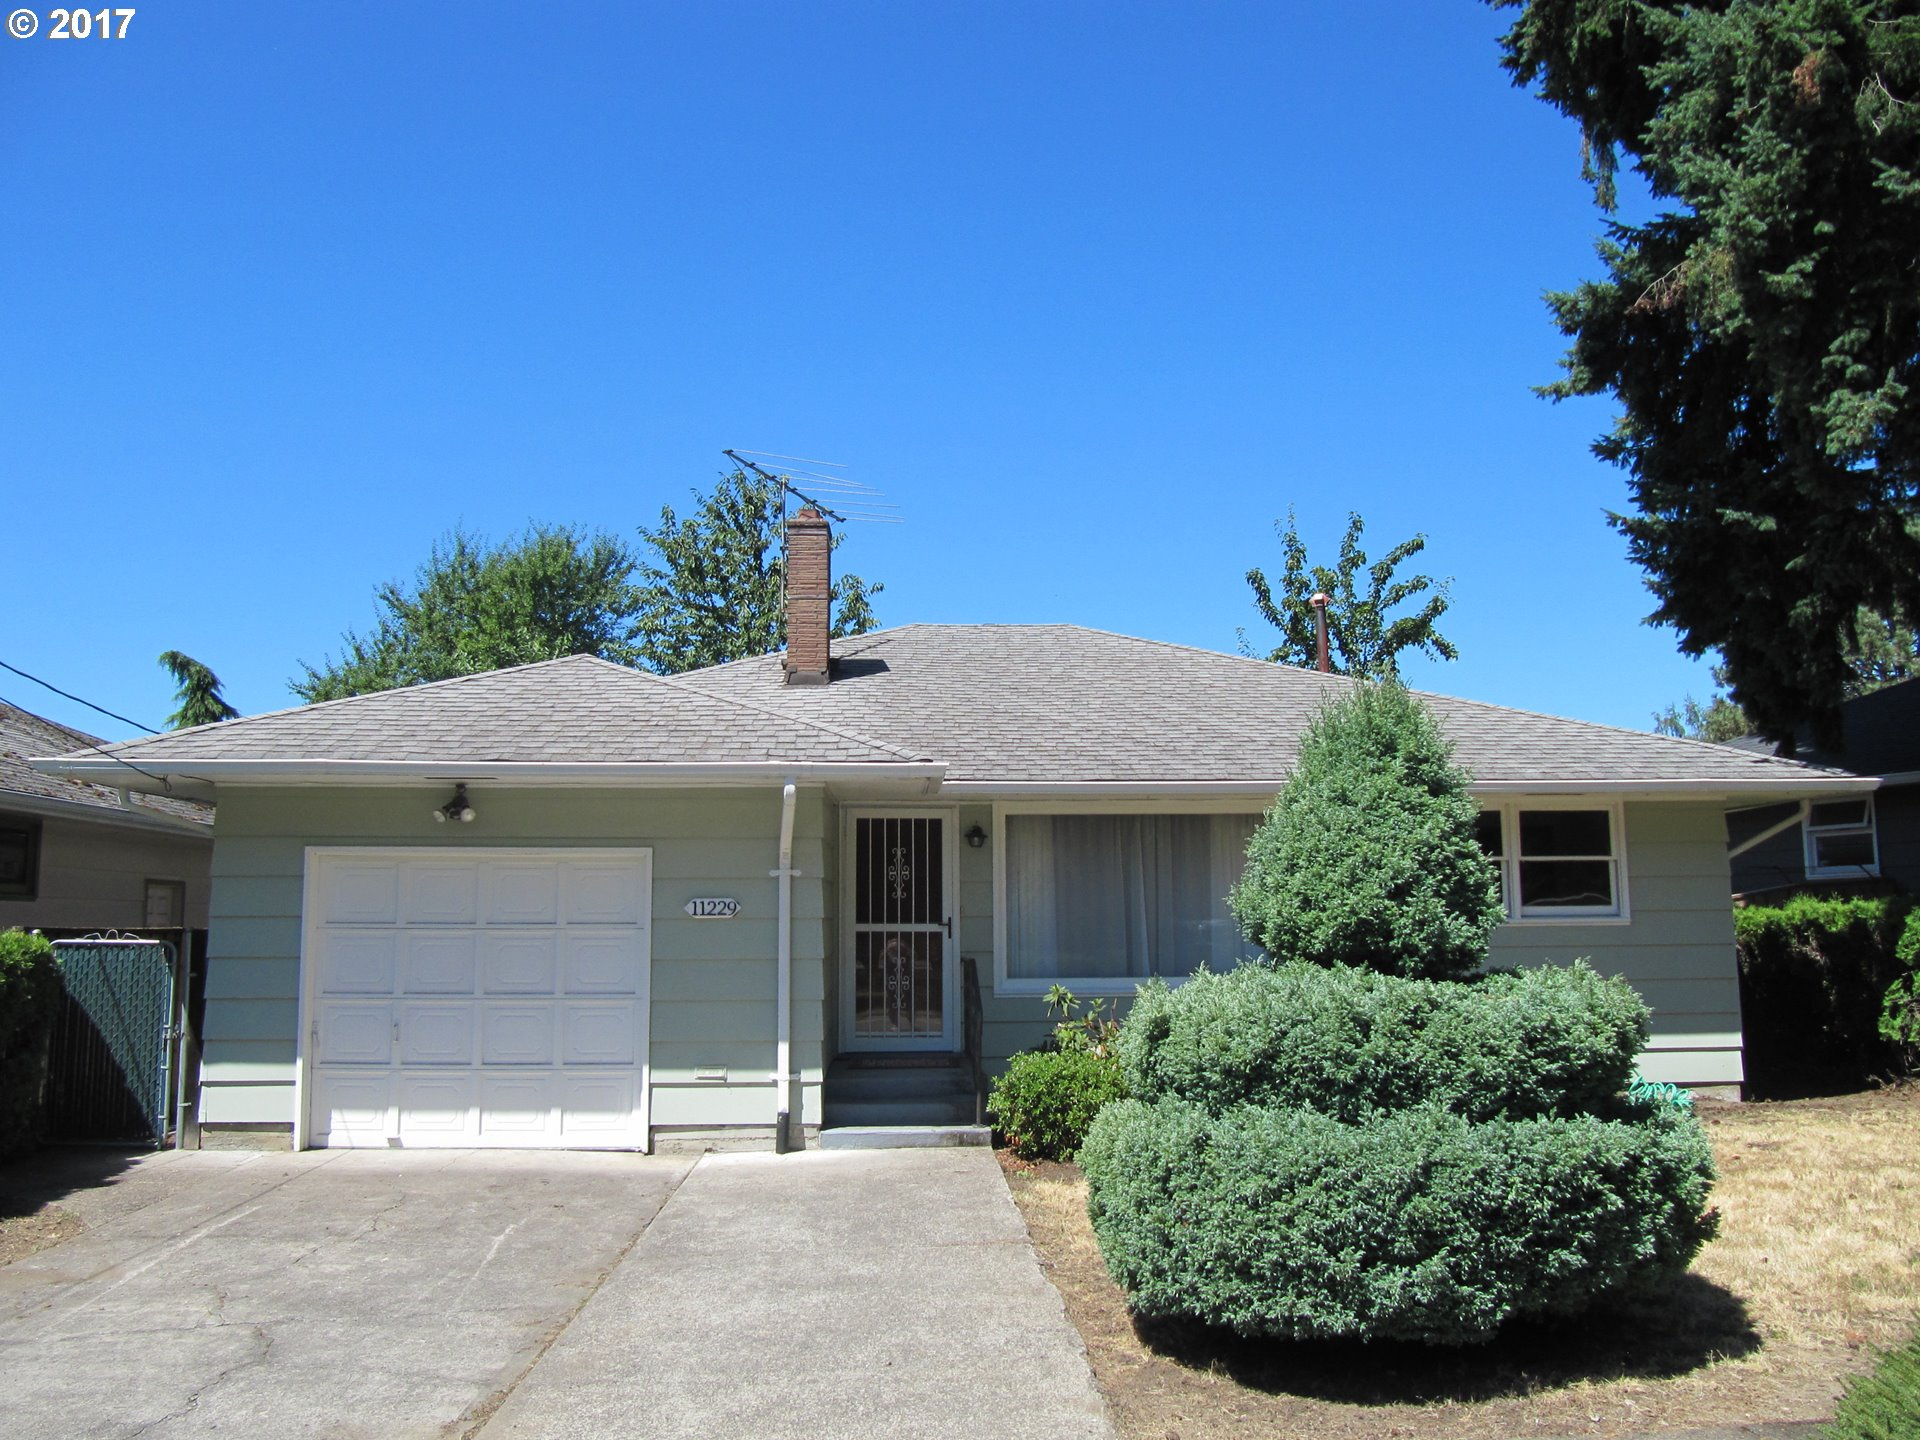 11229 SE 34TH AVE, Milwaukie, OR 97222